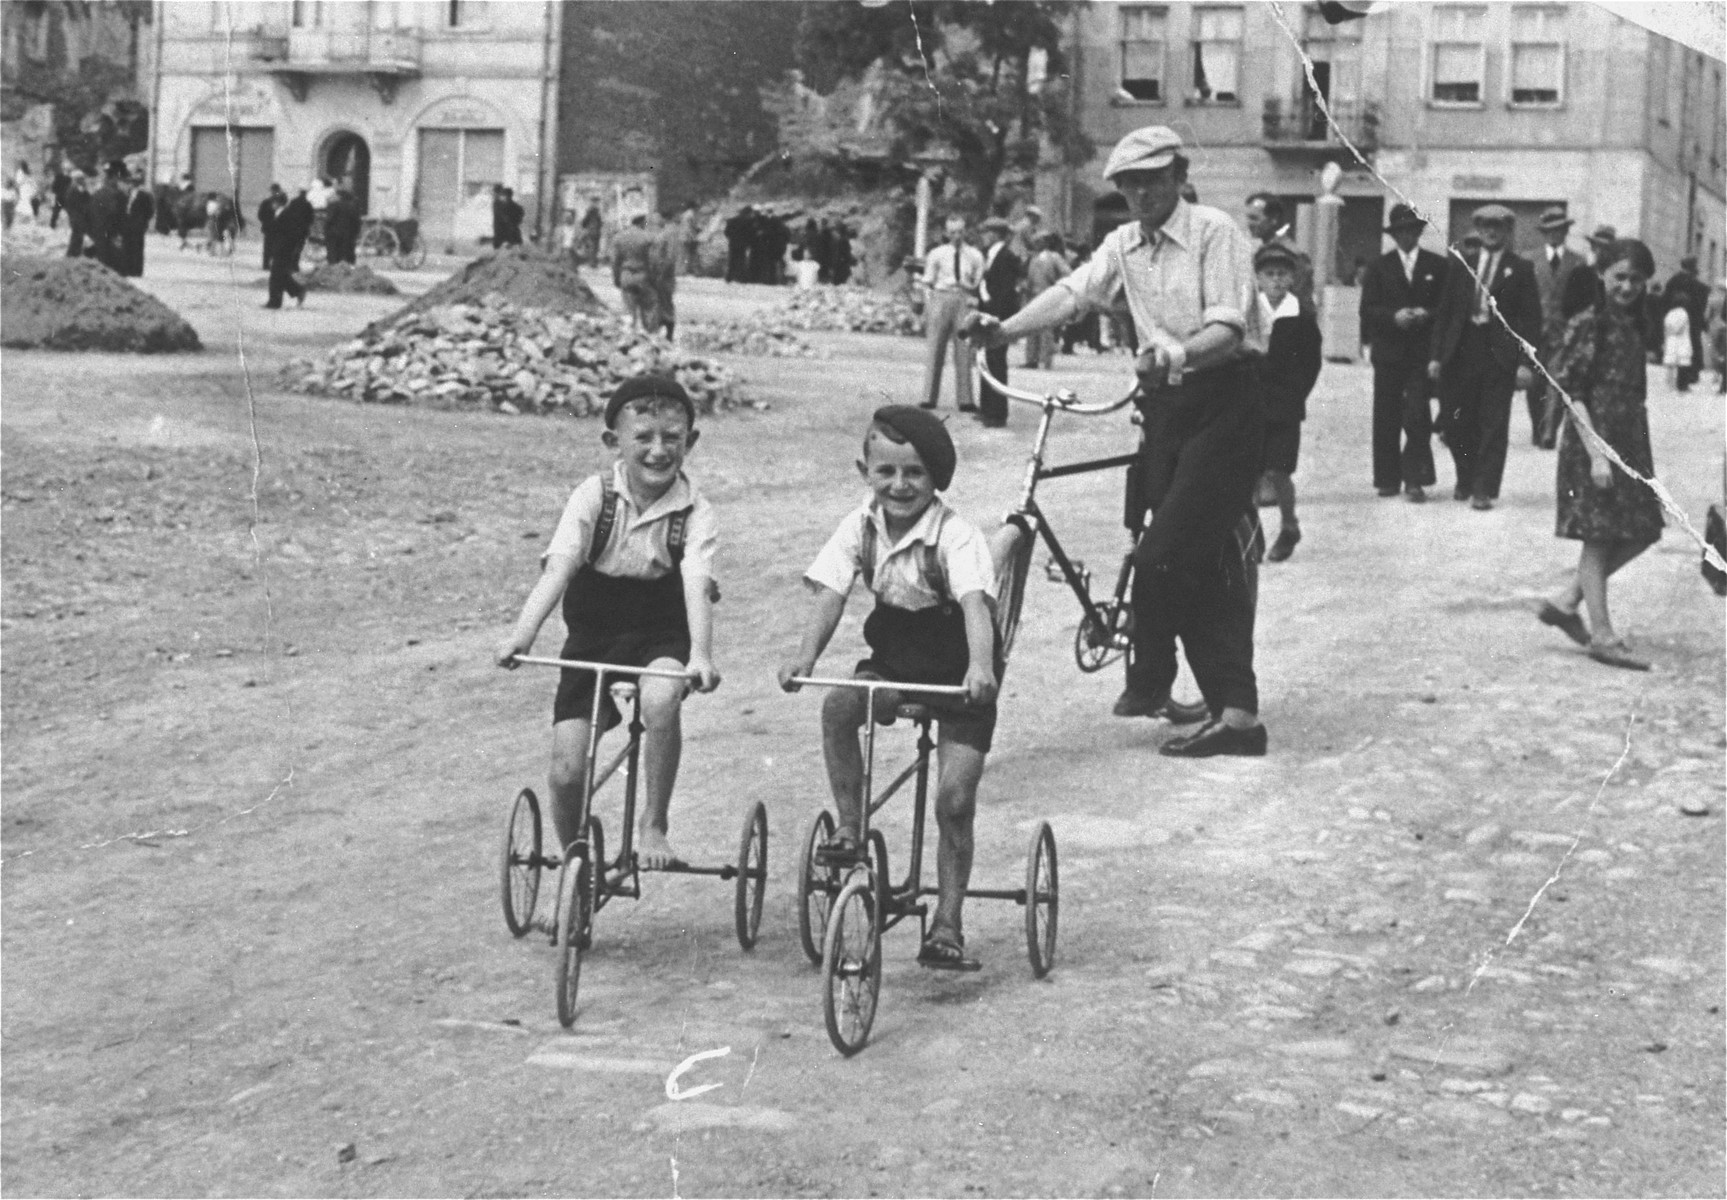 Two Jewish children ride tricycles along a street in Rymanow, Poland.  Pictured are Abraham Keller Landau (behind with the bicycle) and his nephews Natan Chulef Keller and Jaime Chulef Keller.